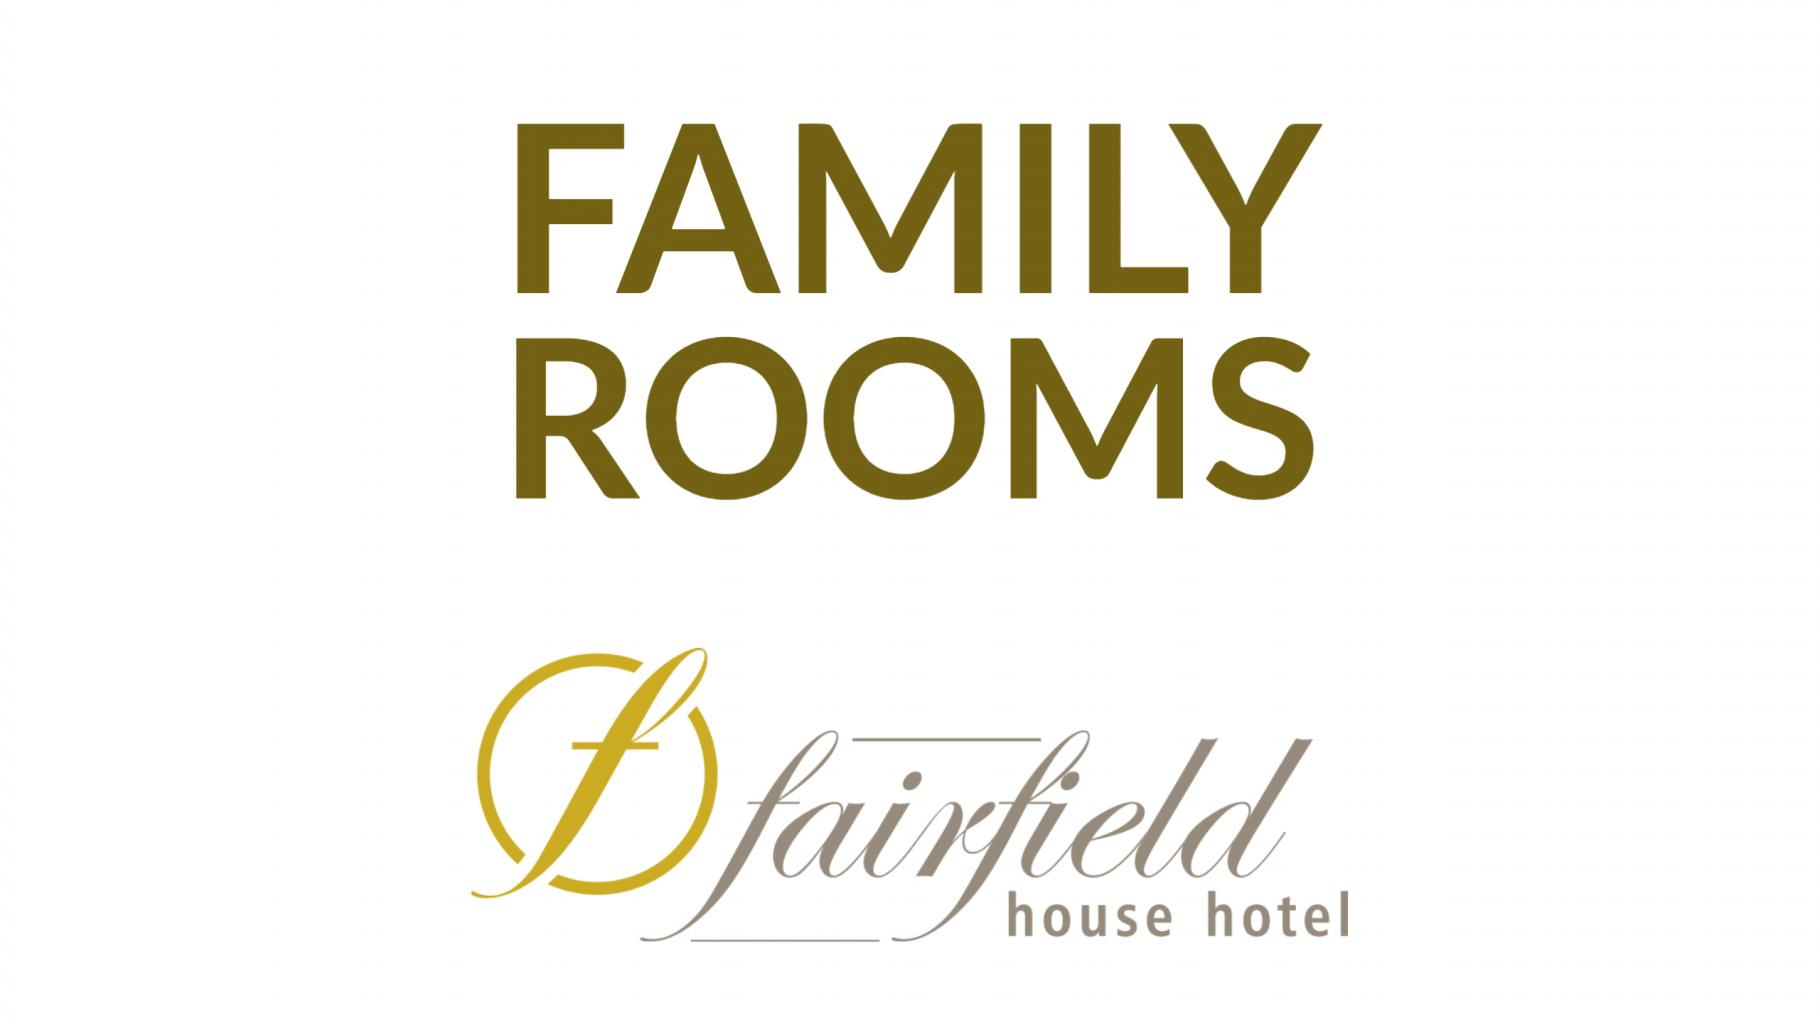 Family Rooms at The Fairfield in Ayr can sleep up to four in comfort.